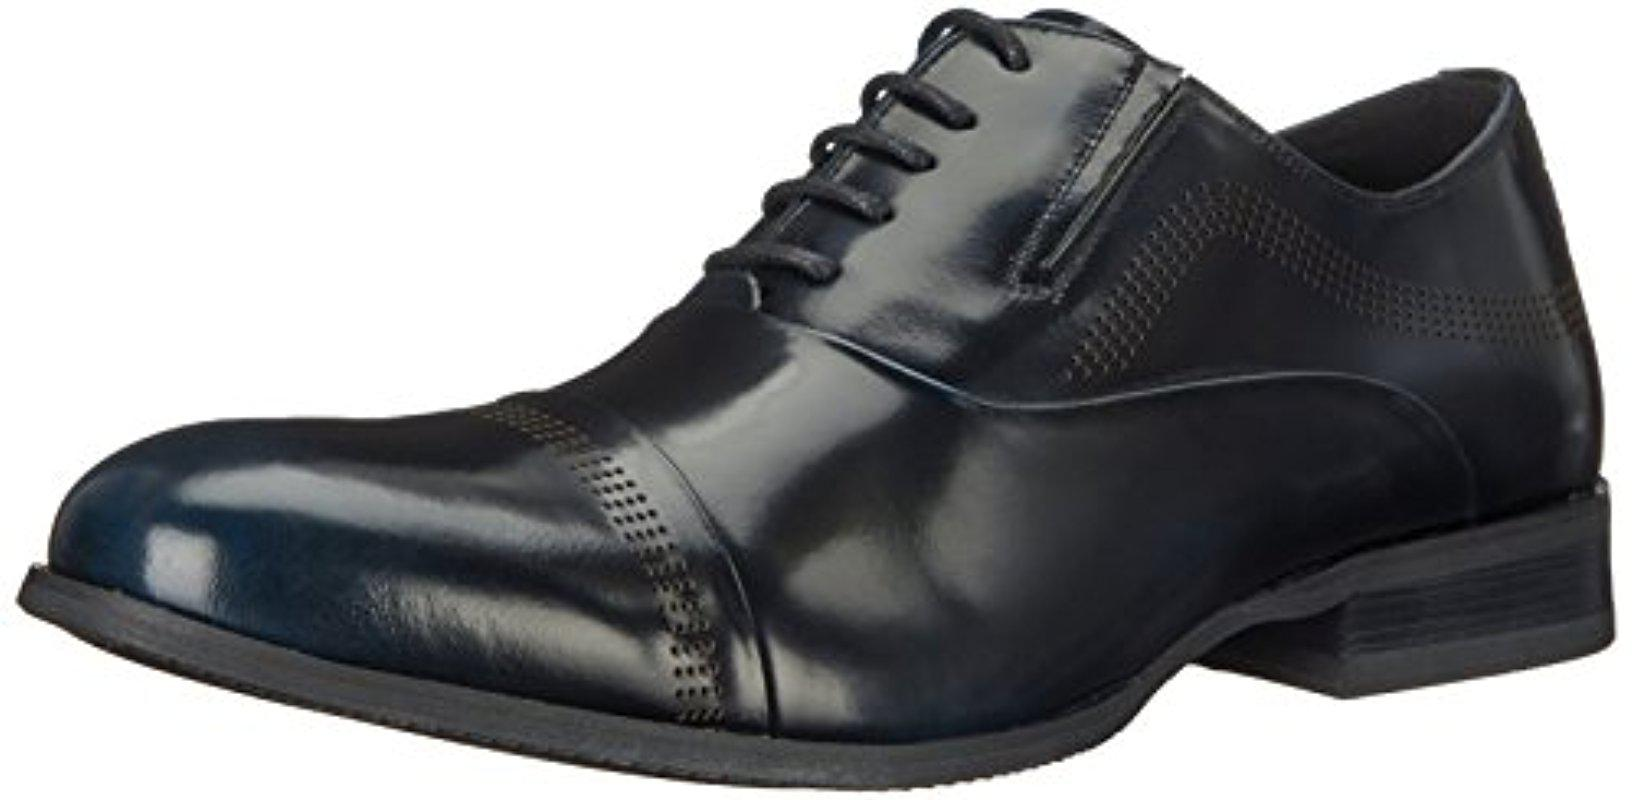 kenneth cole reaction shoes up in smoke cigars